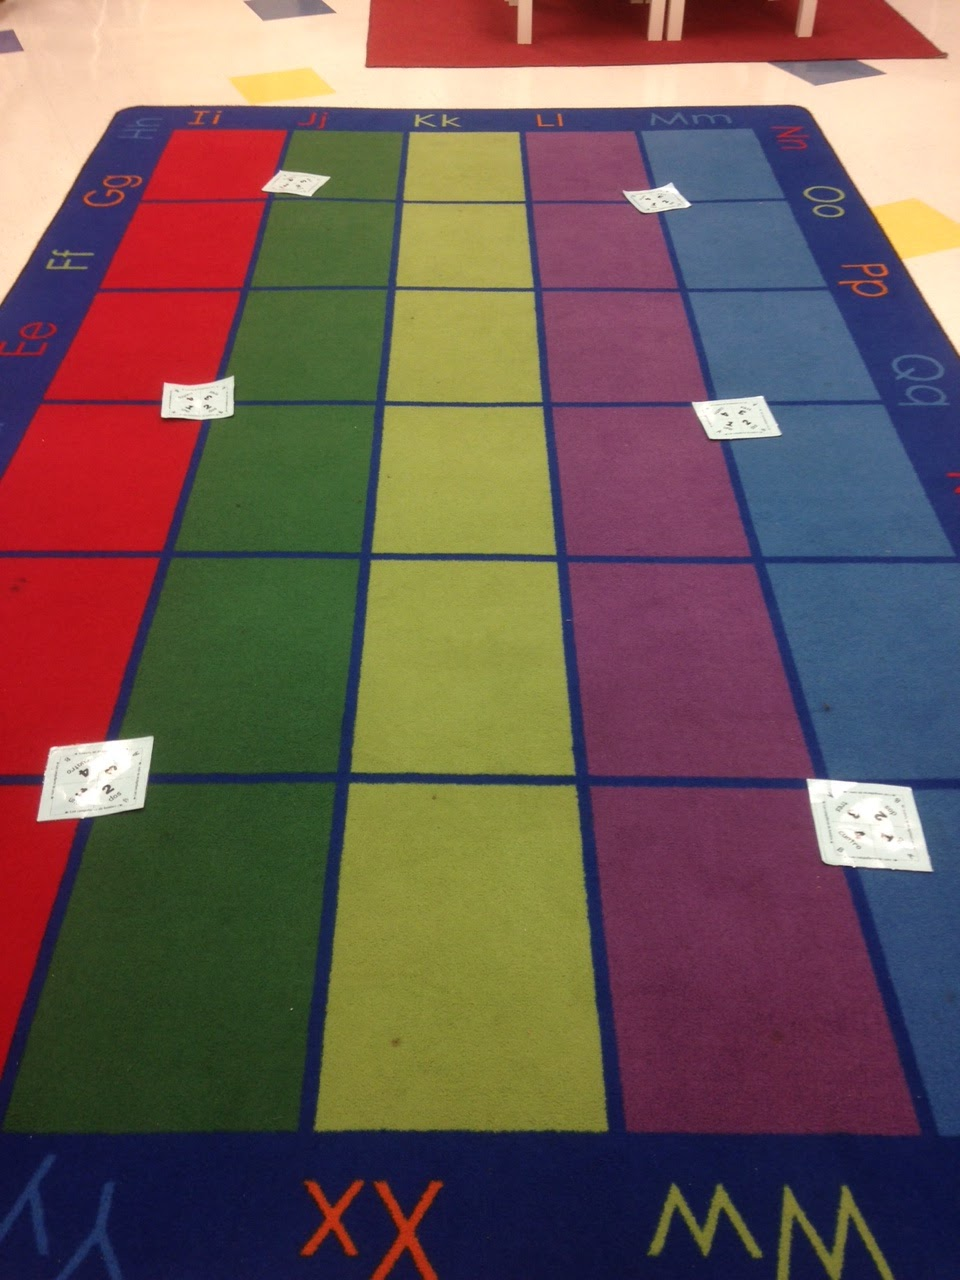 Floor mats in spanish - Do You Use Kagan At Your School What Is Your Favorite Structure For The Elementary School World Language Classroom Share In The Comments Below Or On